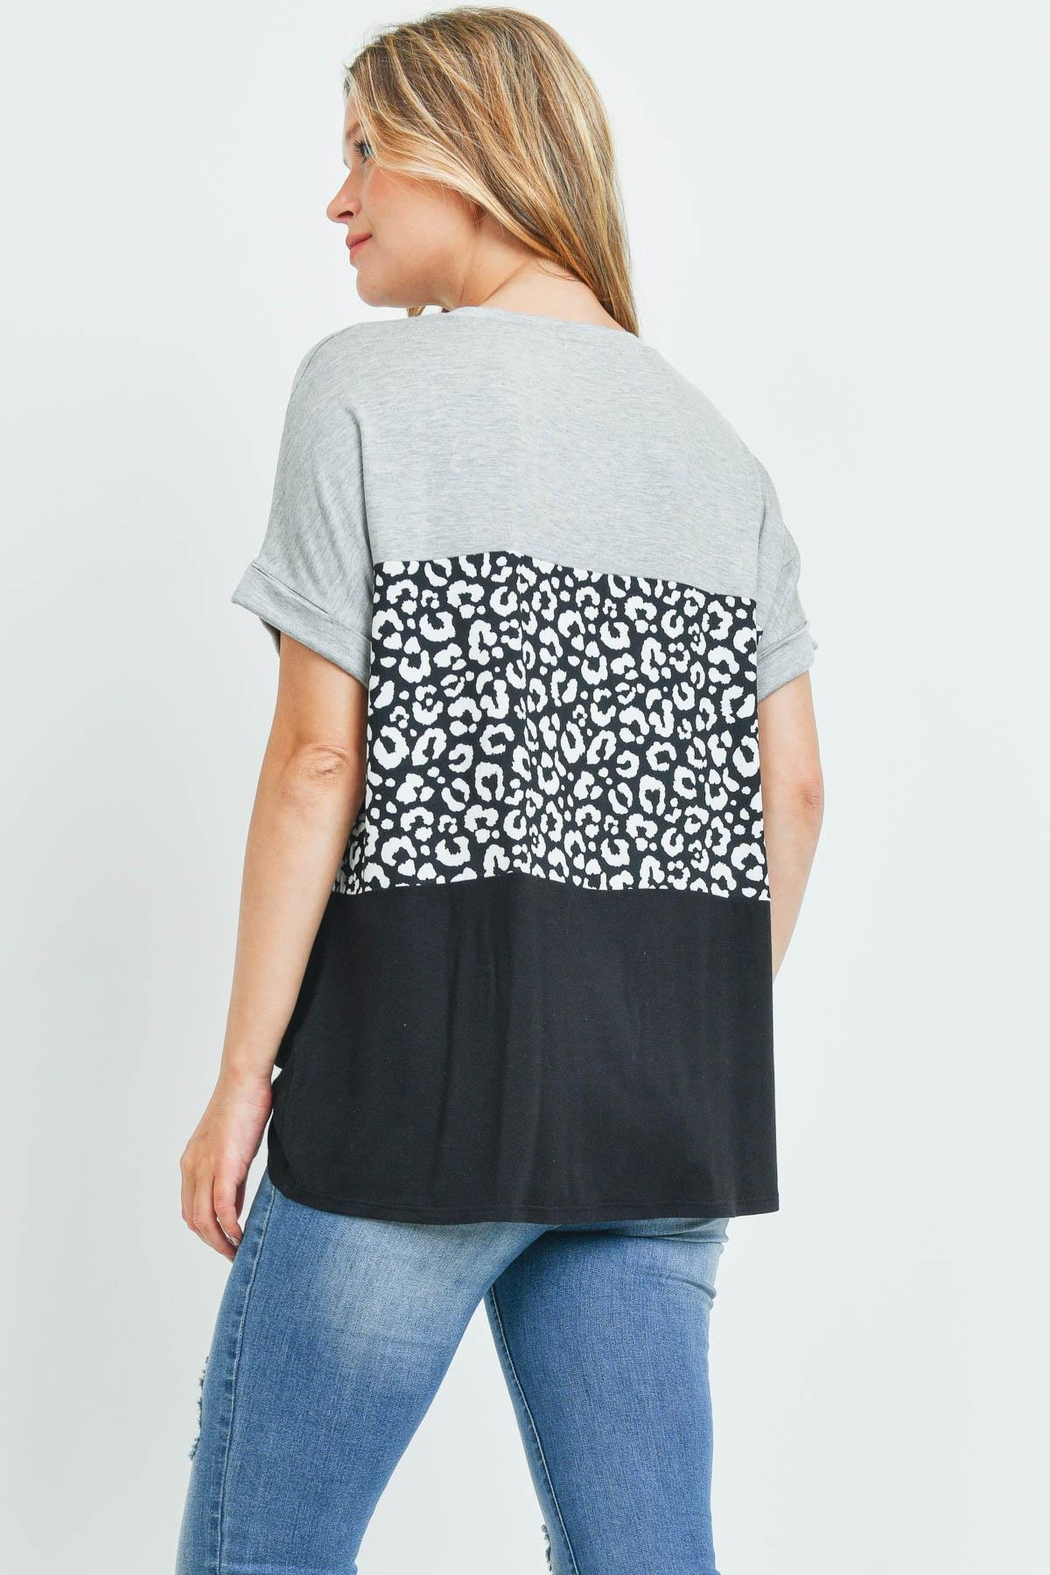 Riah Fashion Rolled-Sleeve-Leopard-Contrast-Top - Front Full Image